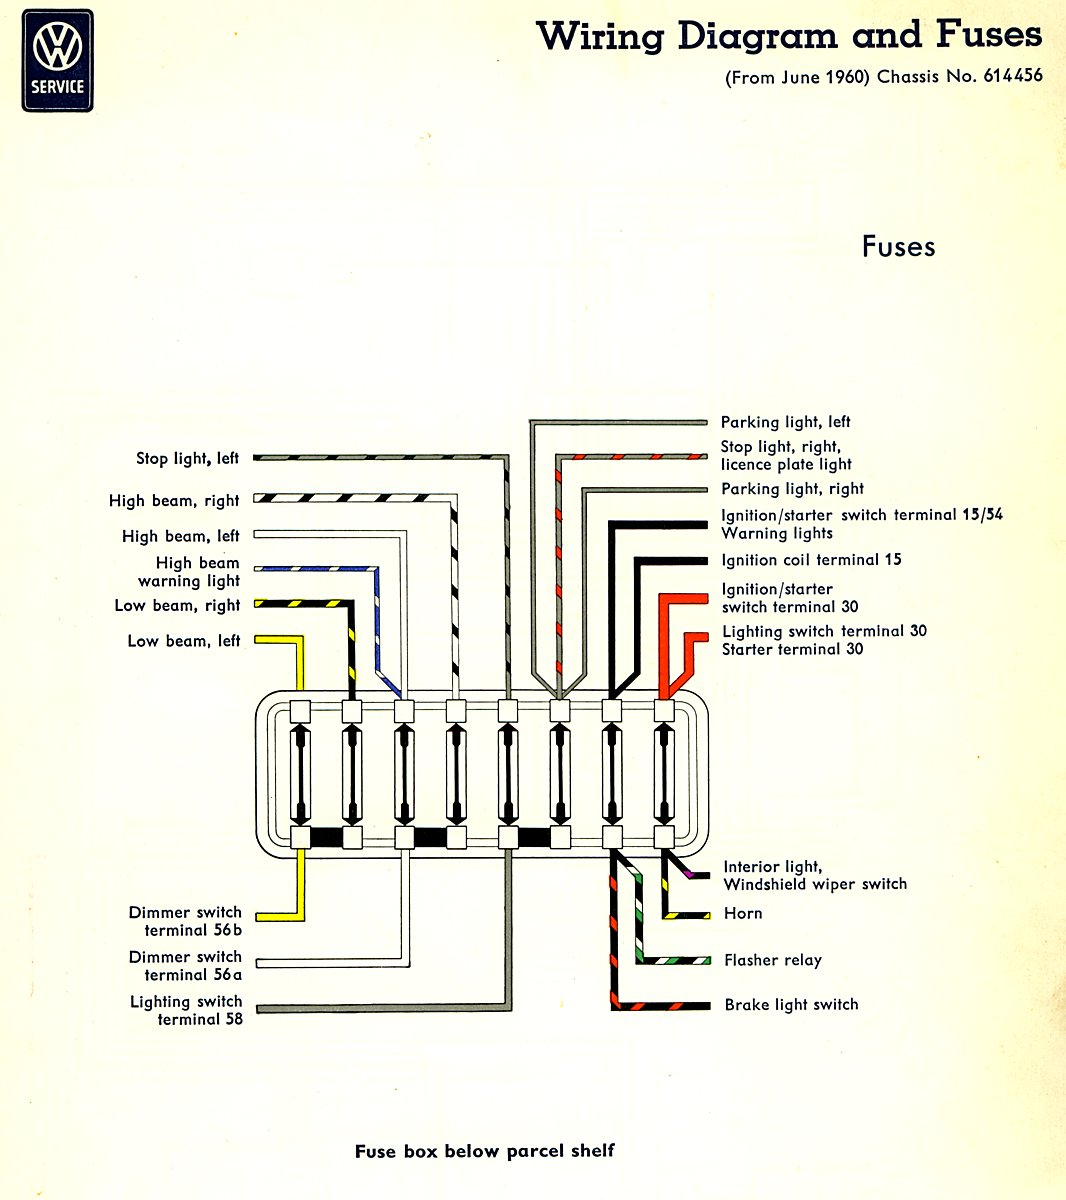 1967 Chevy C10 Fuse Box Diagram Simple Electrical Wiring 1979 Impala Thesamba Com Type 2 Diagrams 2001 Silverado 1960